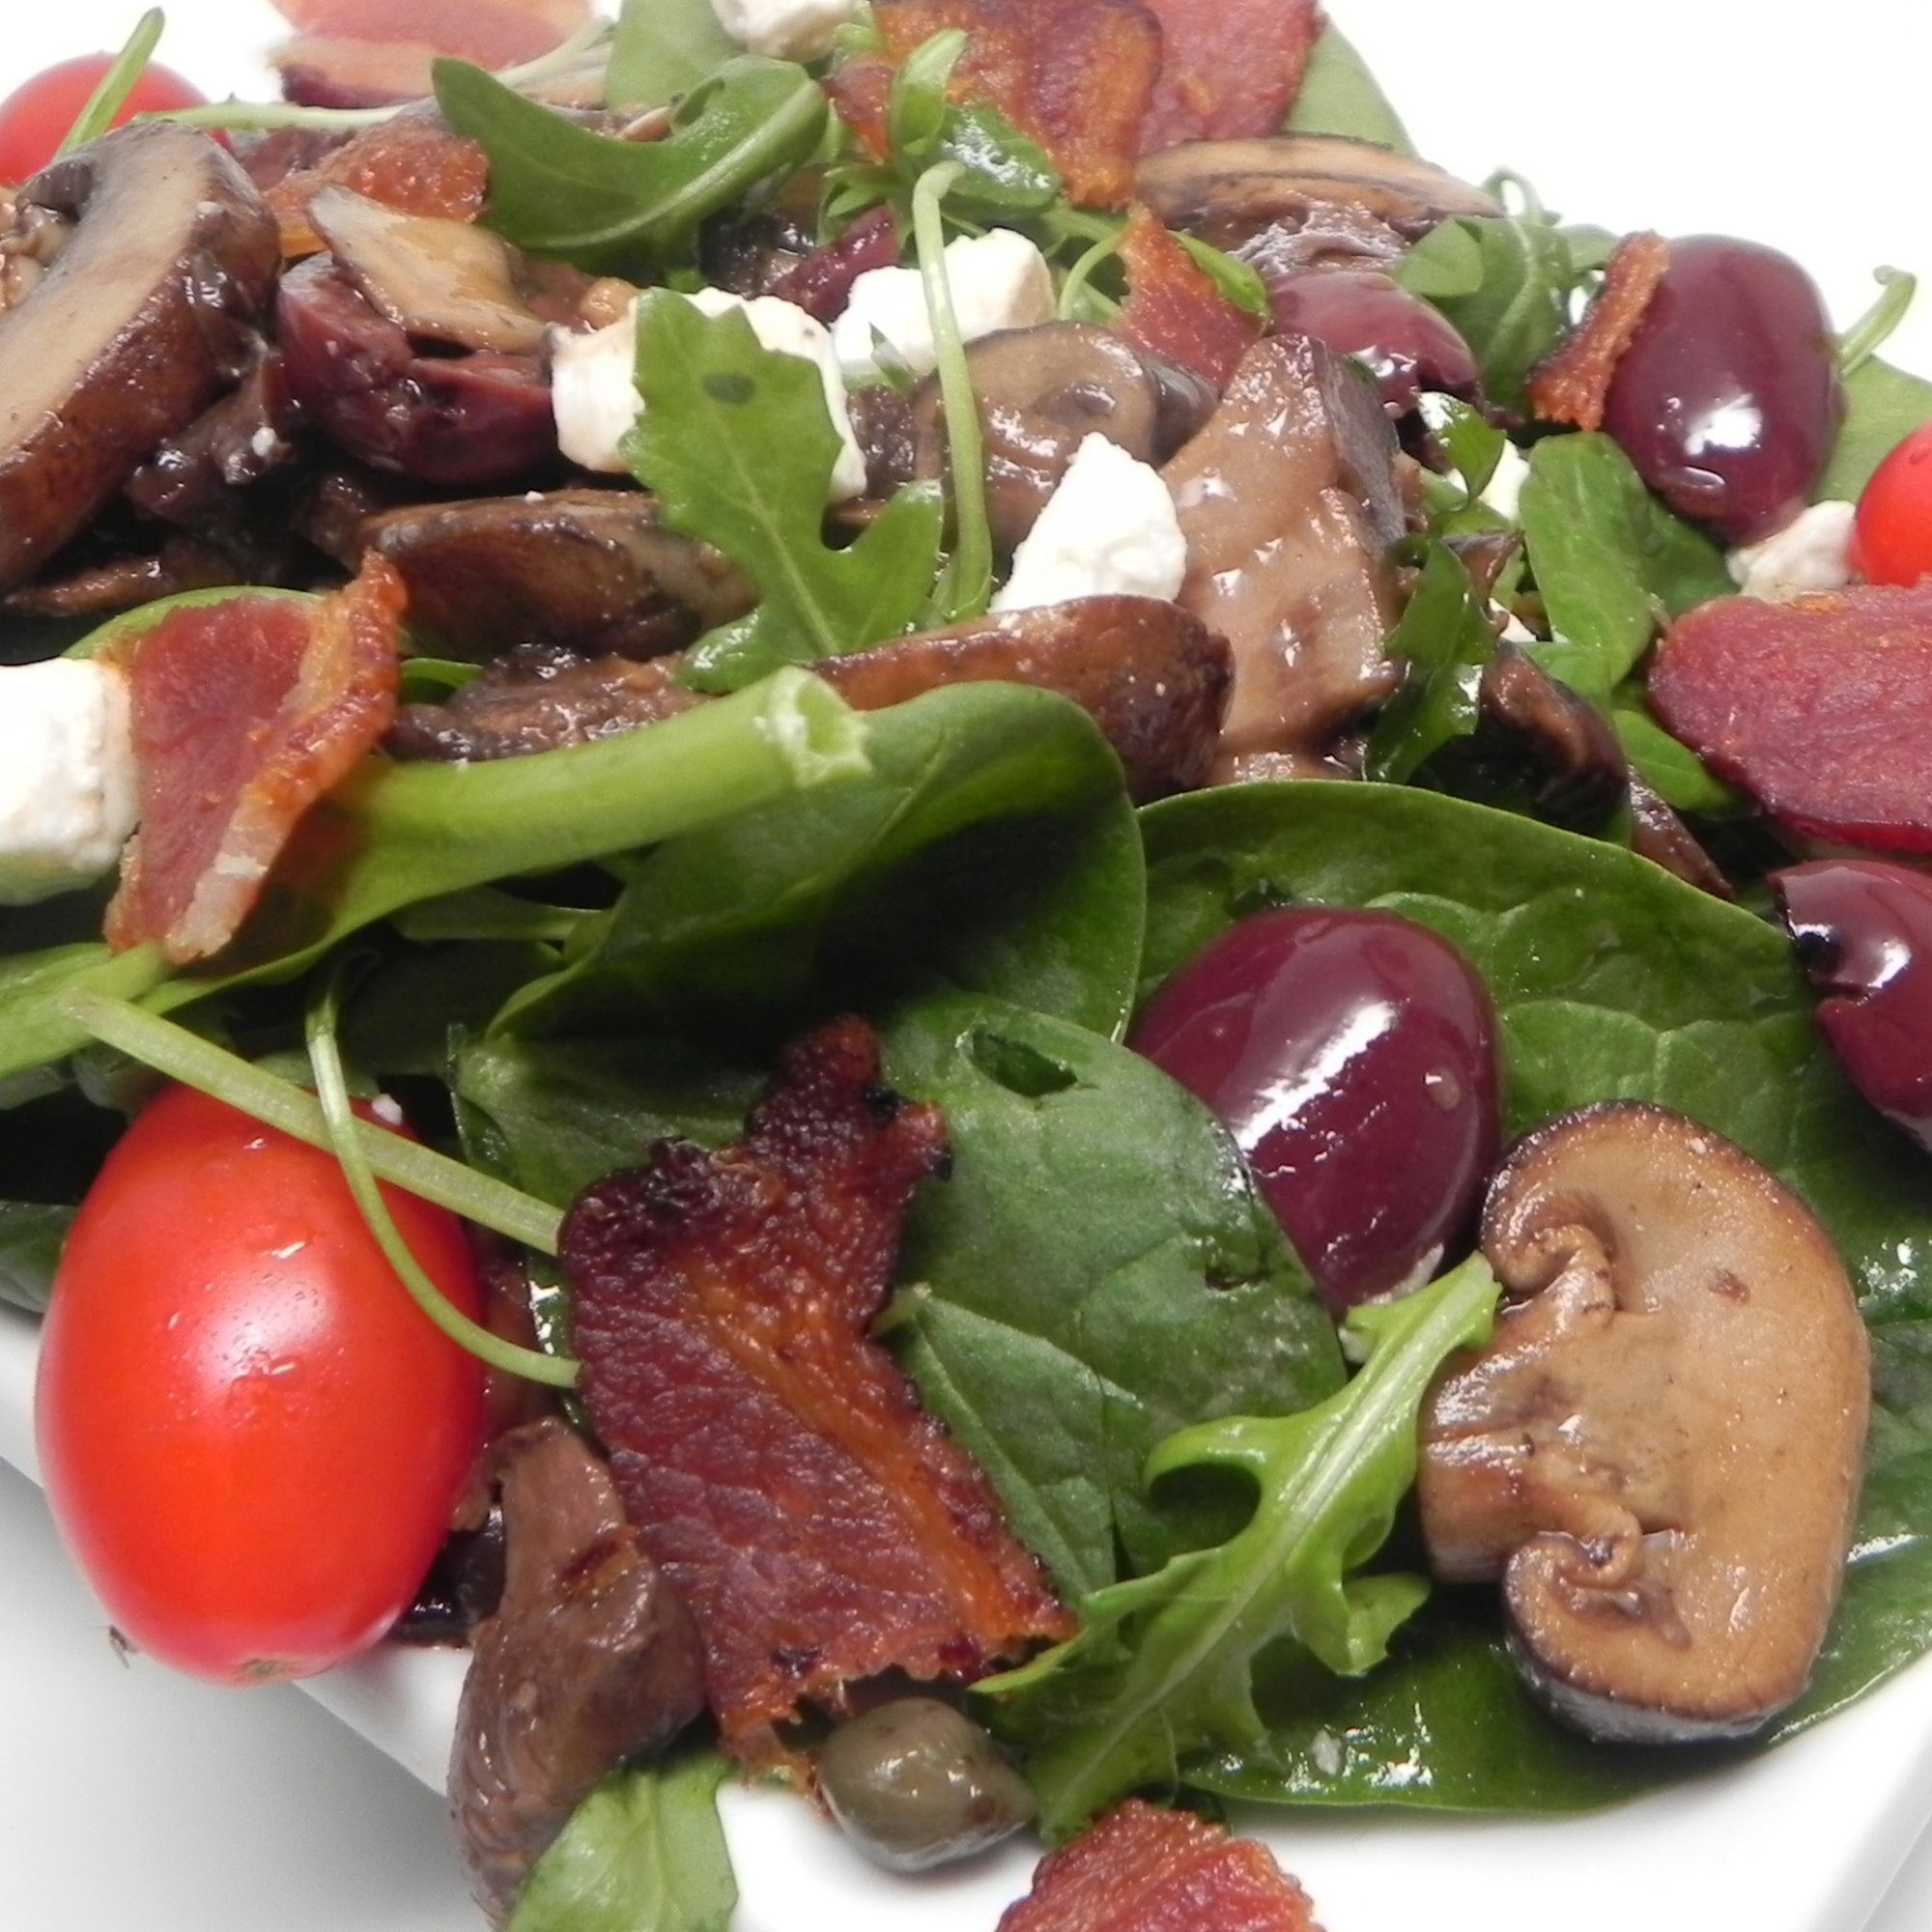 Warm Mushroom Salad with Pancetta on a white plate